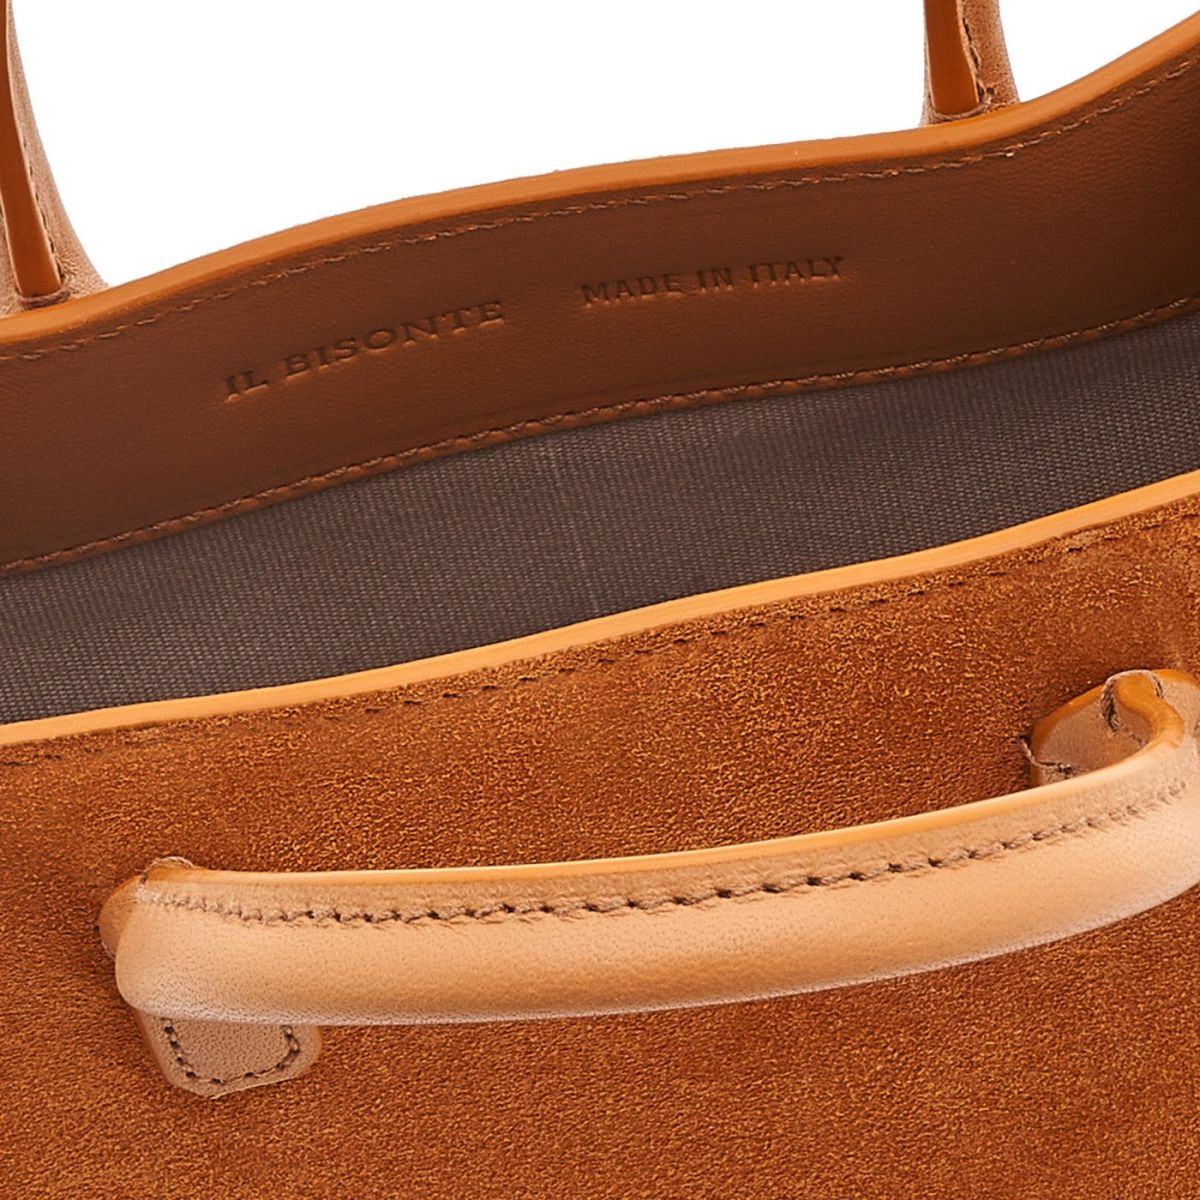 Sole Mini - Women's Handbag in Vegetable Tanned Cowhide Leather/Re-Suede color Natural/Brown - Fifty On line BHA009 | Details